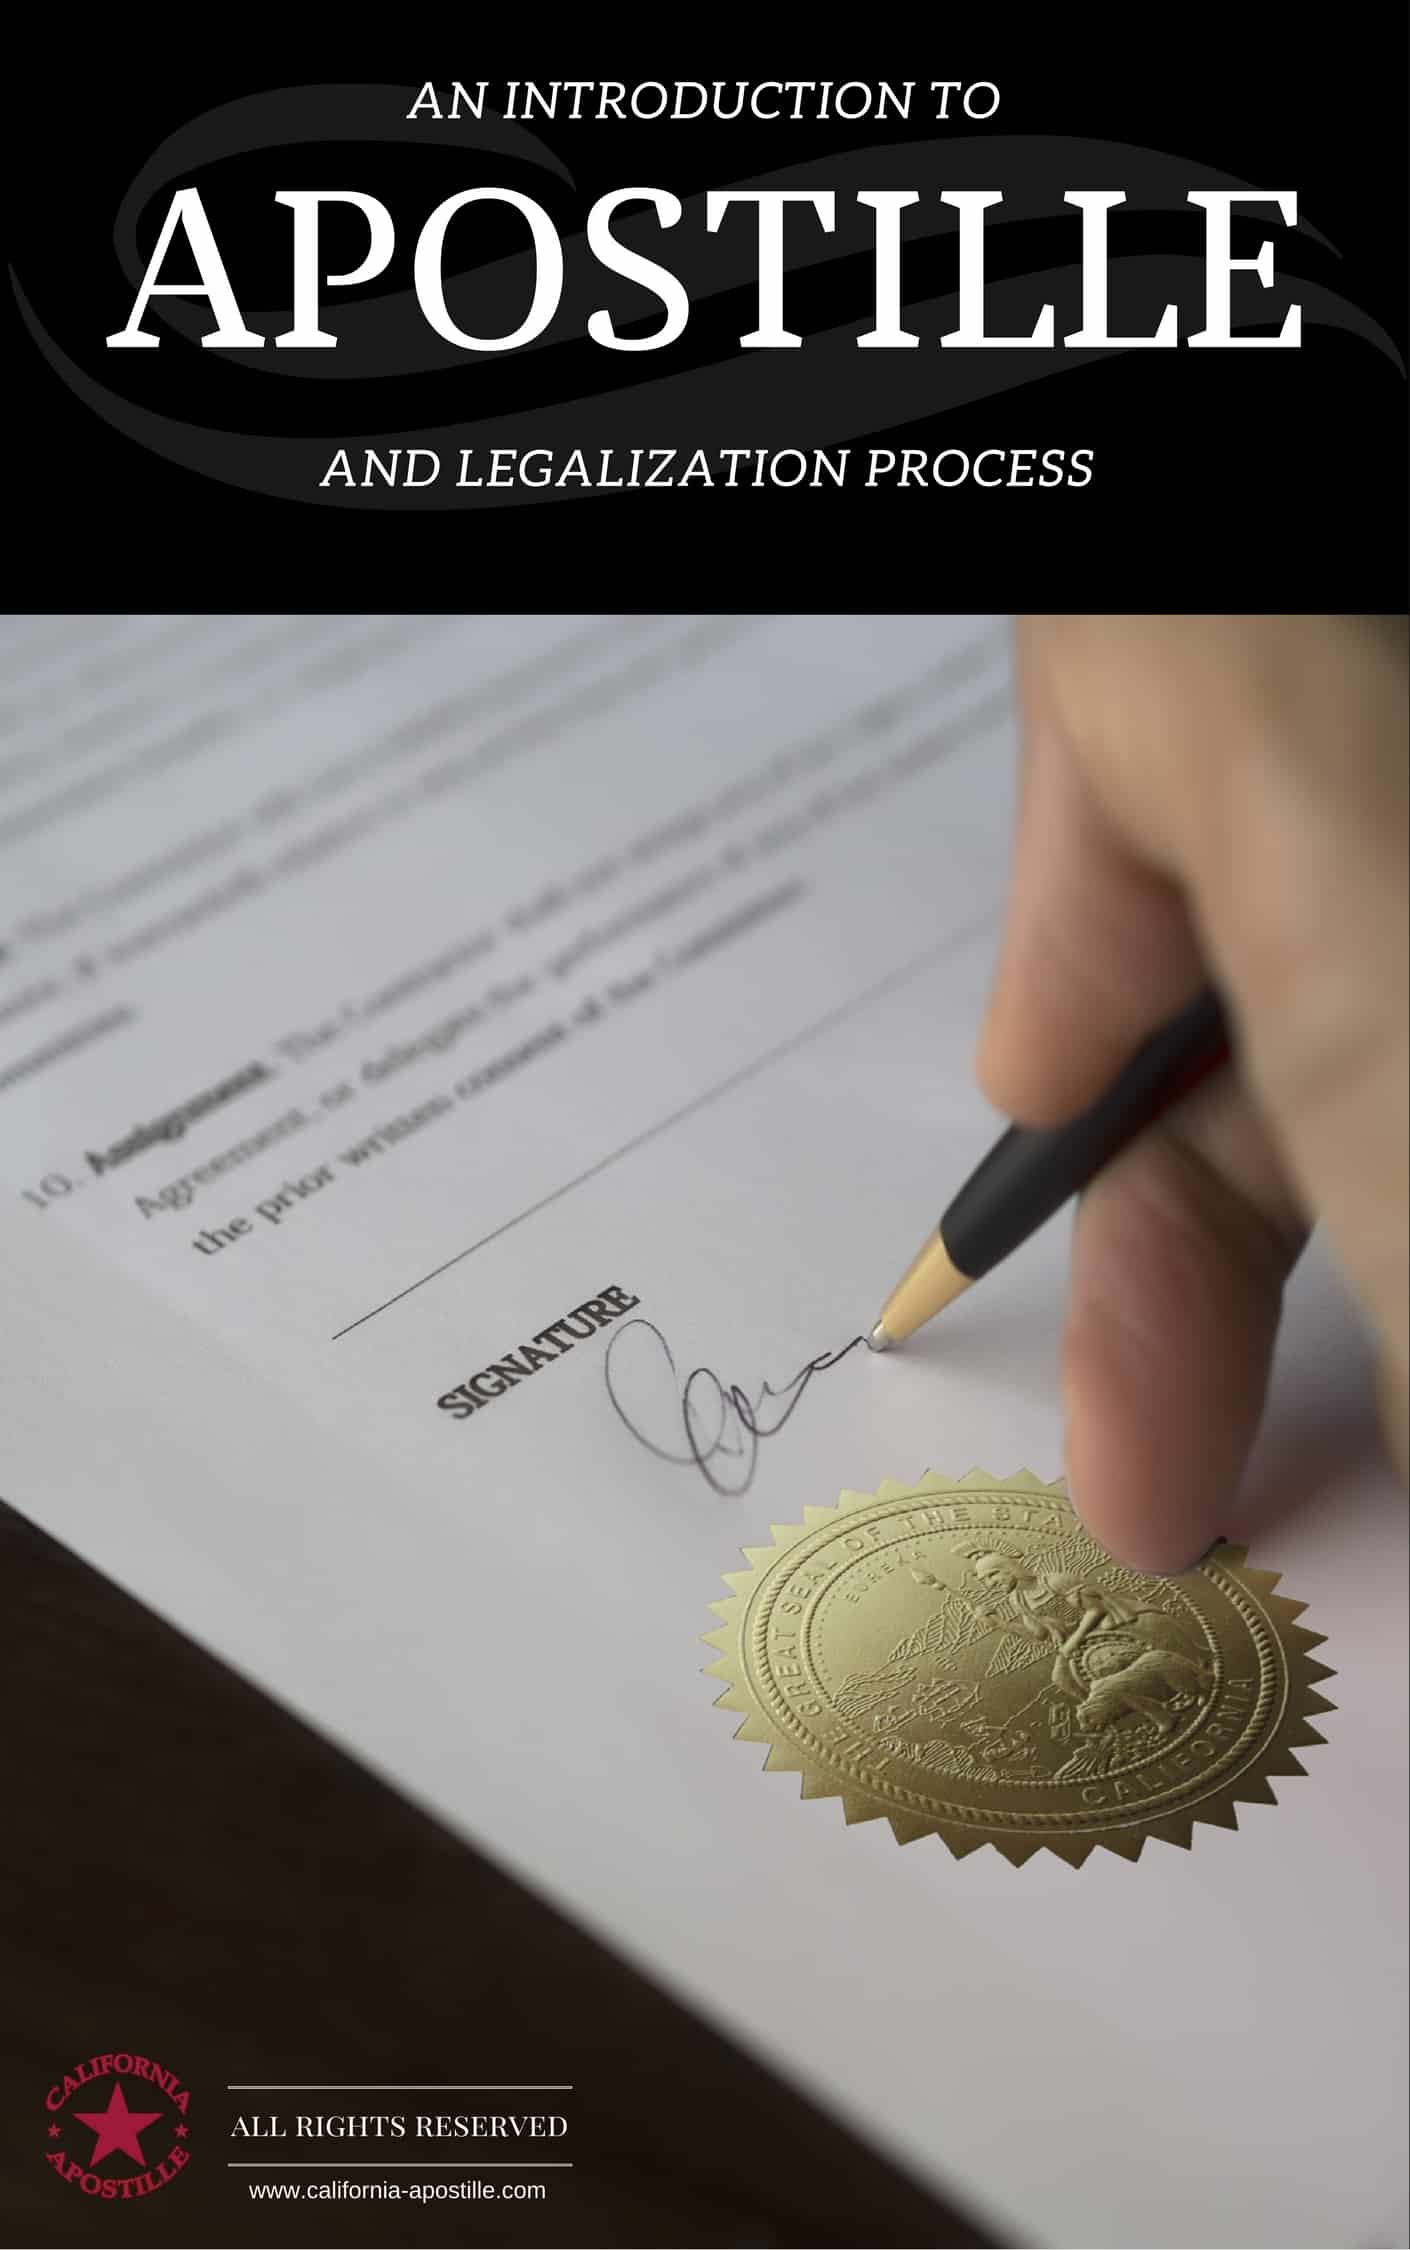 The ultimate guide for apostille free ebook your intro to getting apostille notarization or legalization in the us the diy guide falaconquin